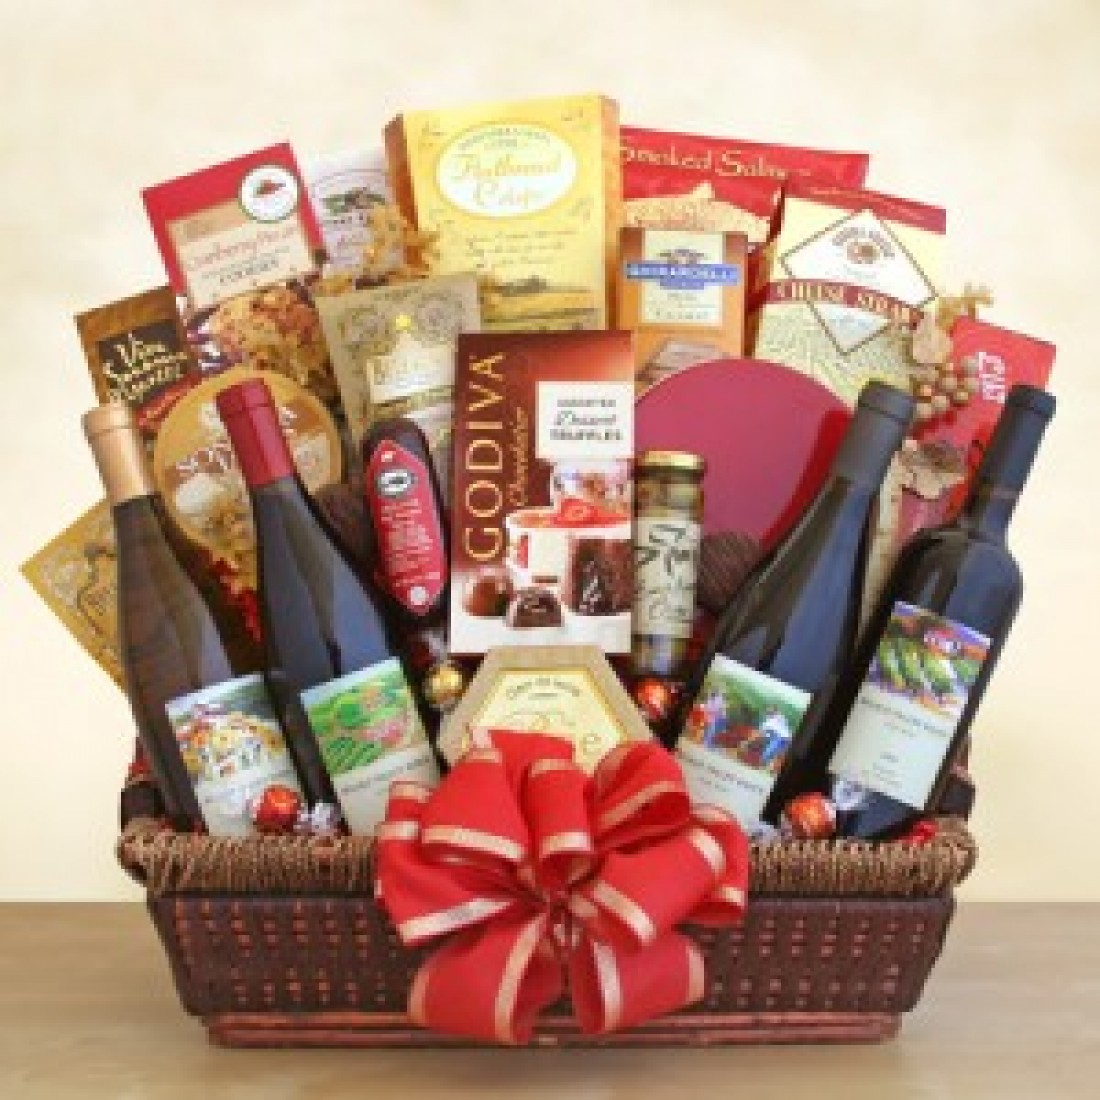 California Splendor Gourmet Foods & California Splendor Gourmet Foods | Free Shipping